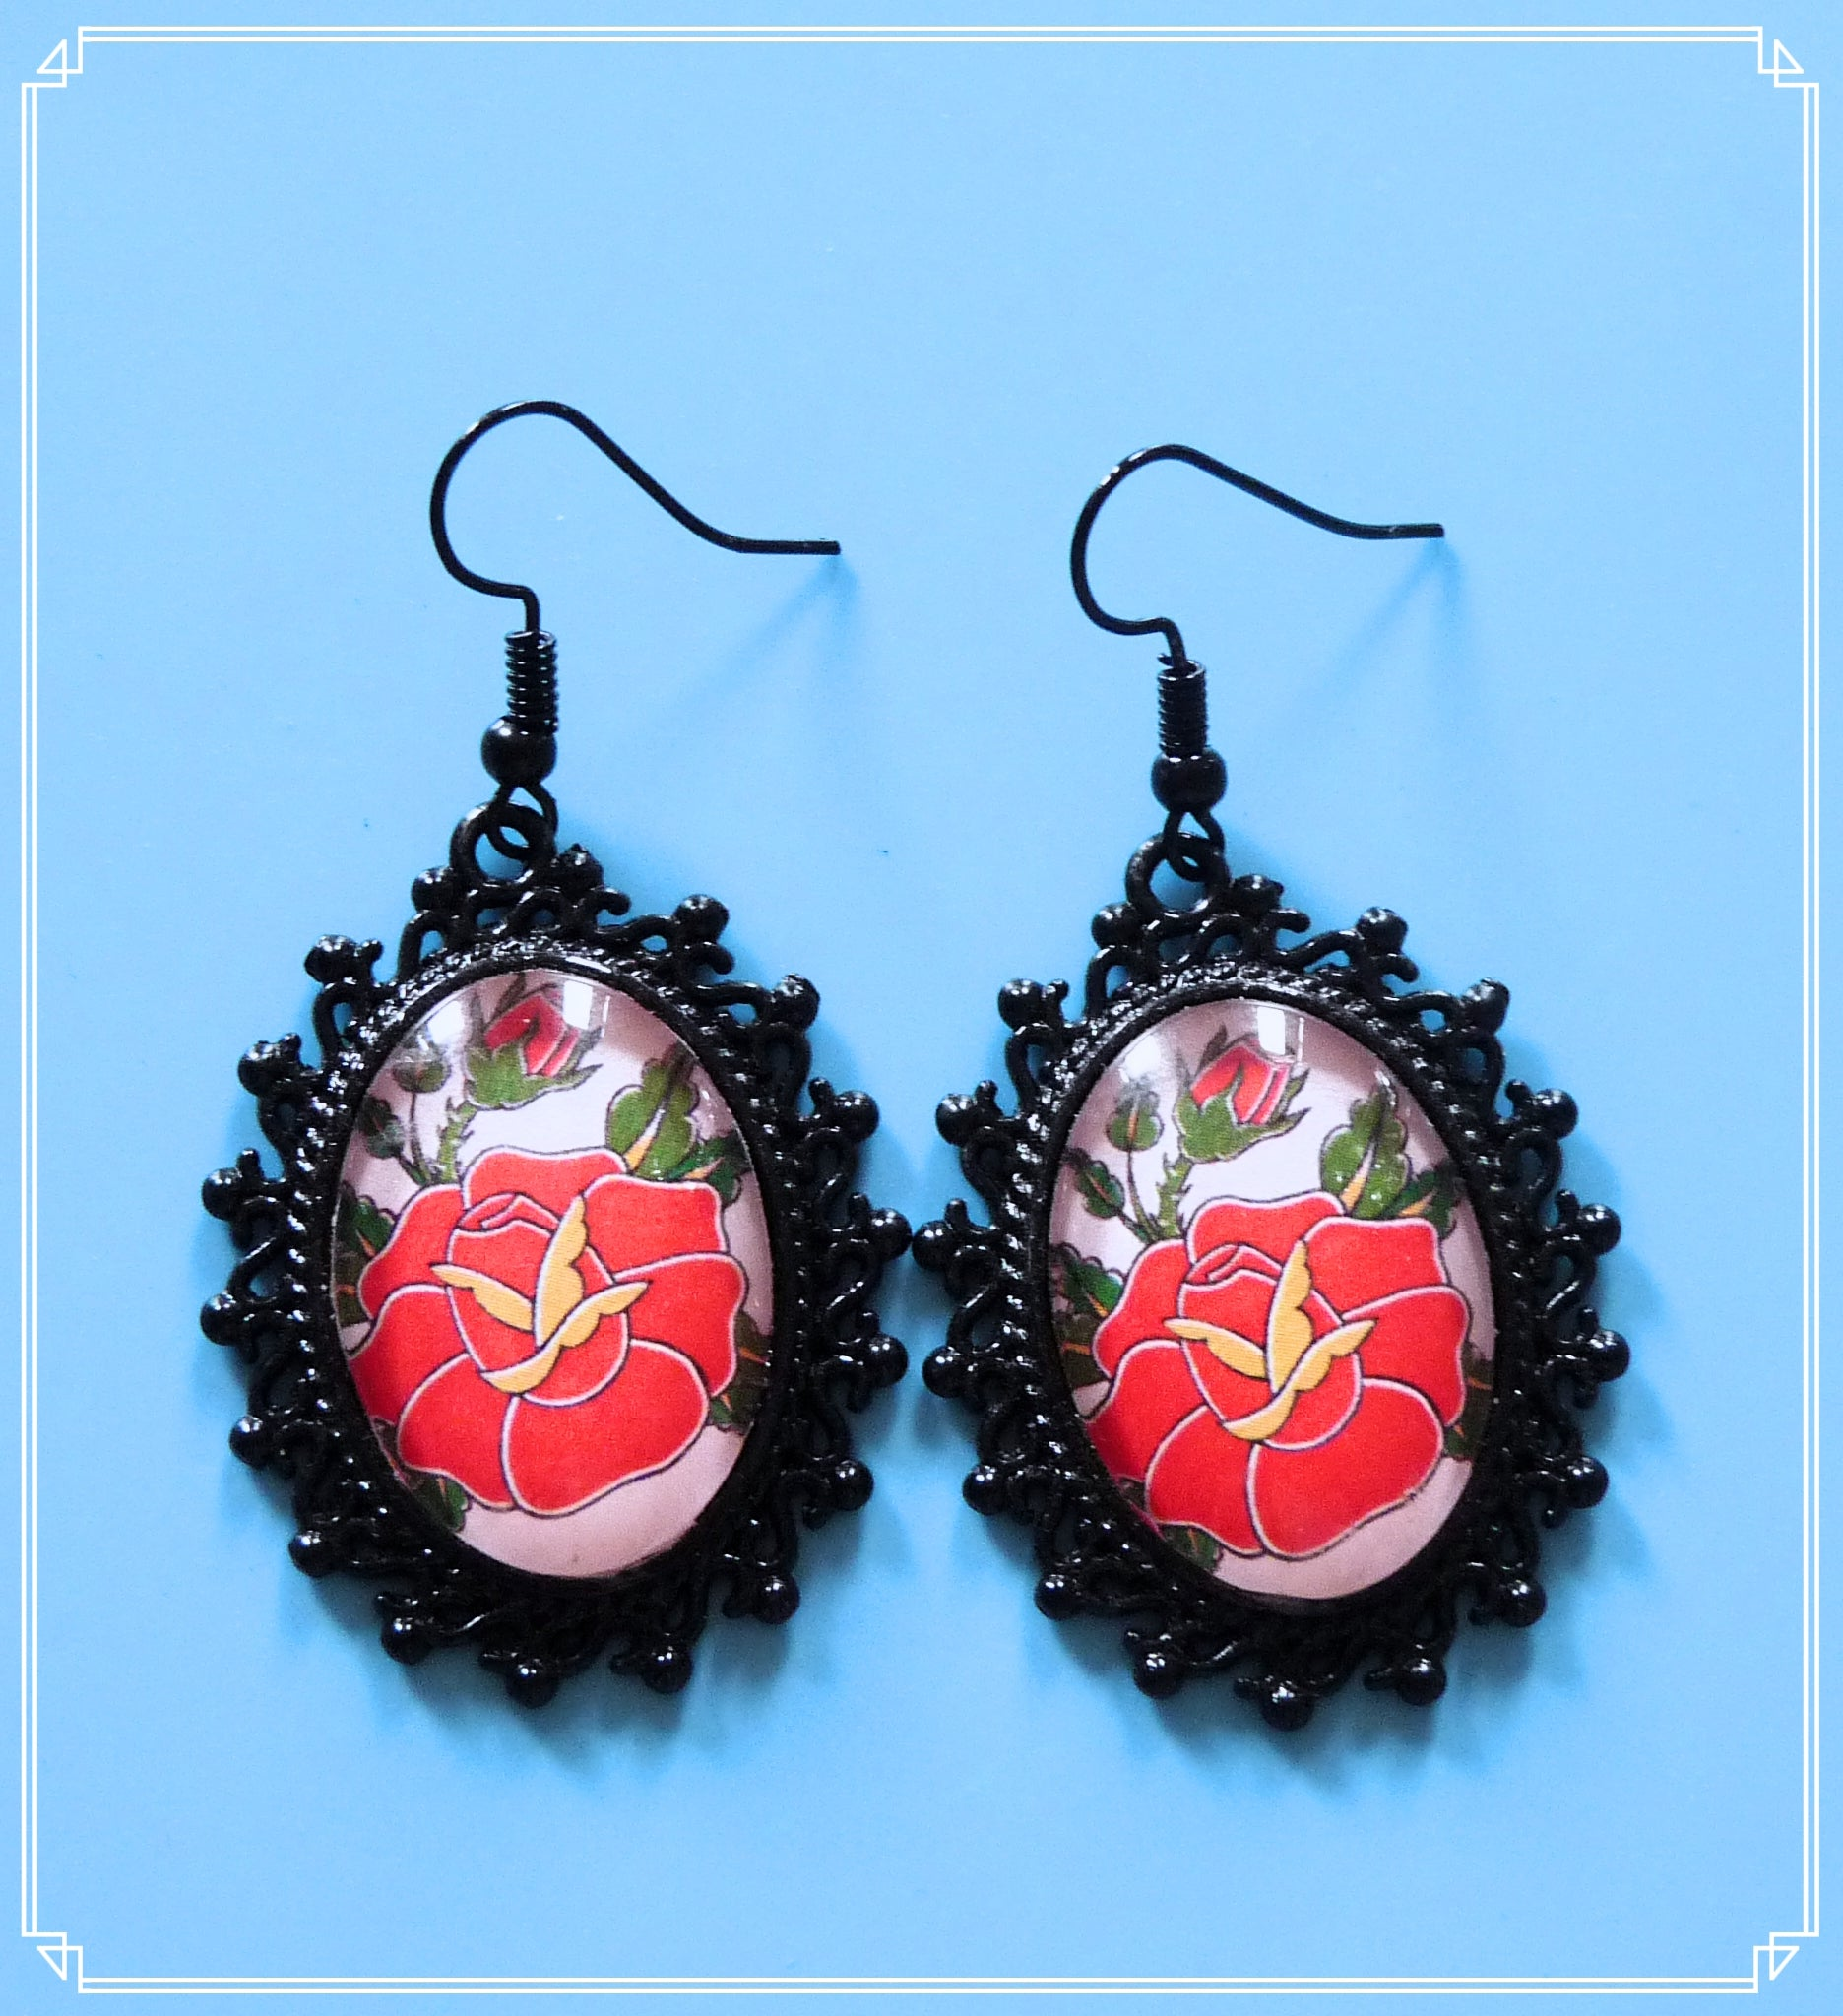 Rose statement earrings (black setting) is a collaboration with Crystalline of Print With Love and part of my Colour Your World collection.  This image was drawn exclusively for Tikas Treasure and you won't find it elsewhere.  The print can be purchased at Print with Love on Etsy.